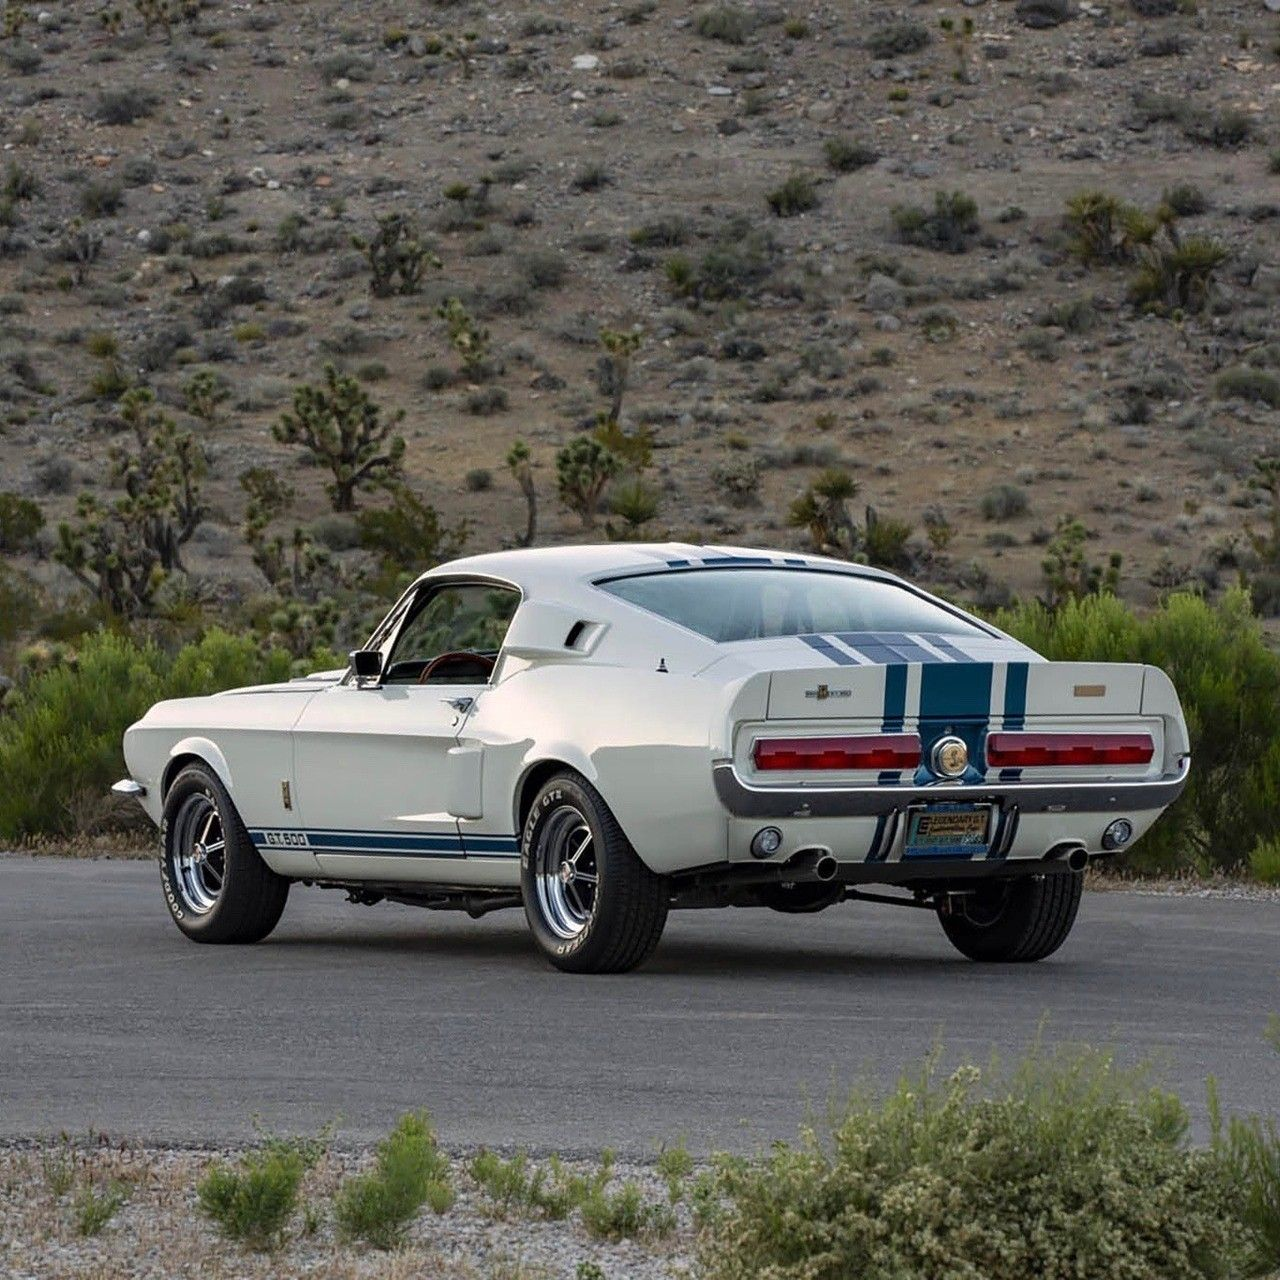 1967 Ford Shelby Gt500 Super Snake Mustang Shelby Cobra Shelby Gt500 Classic Cars Muscle